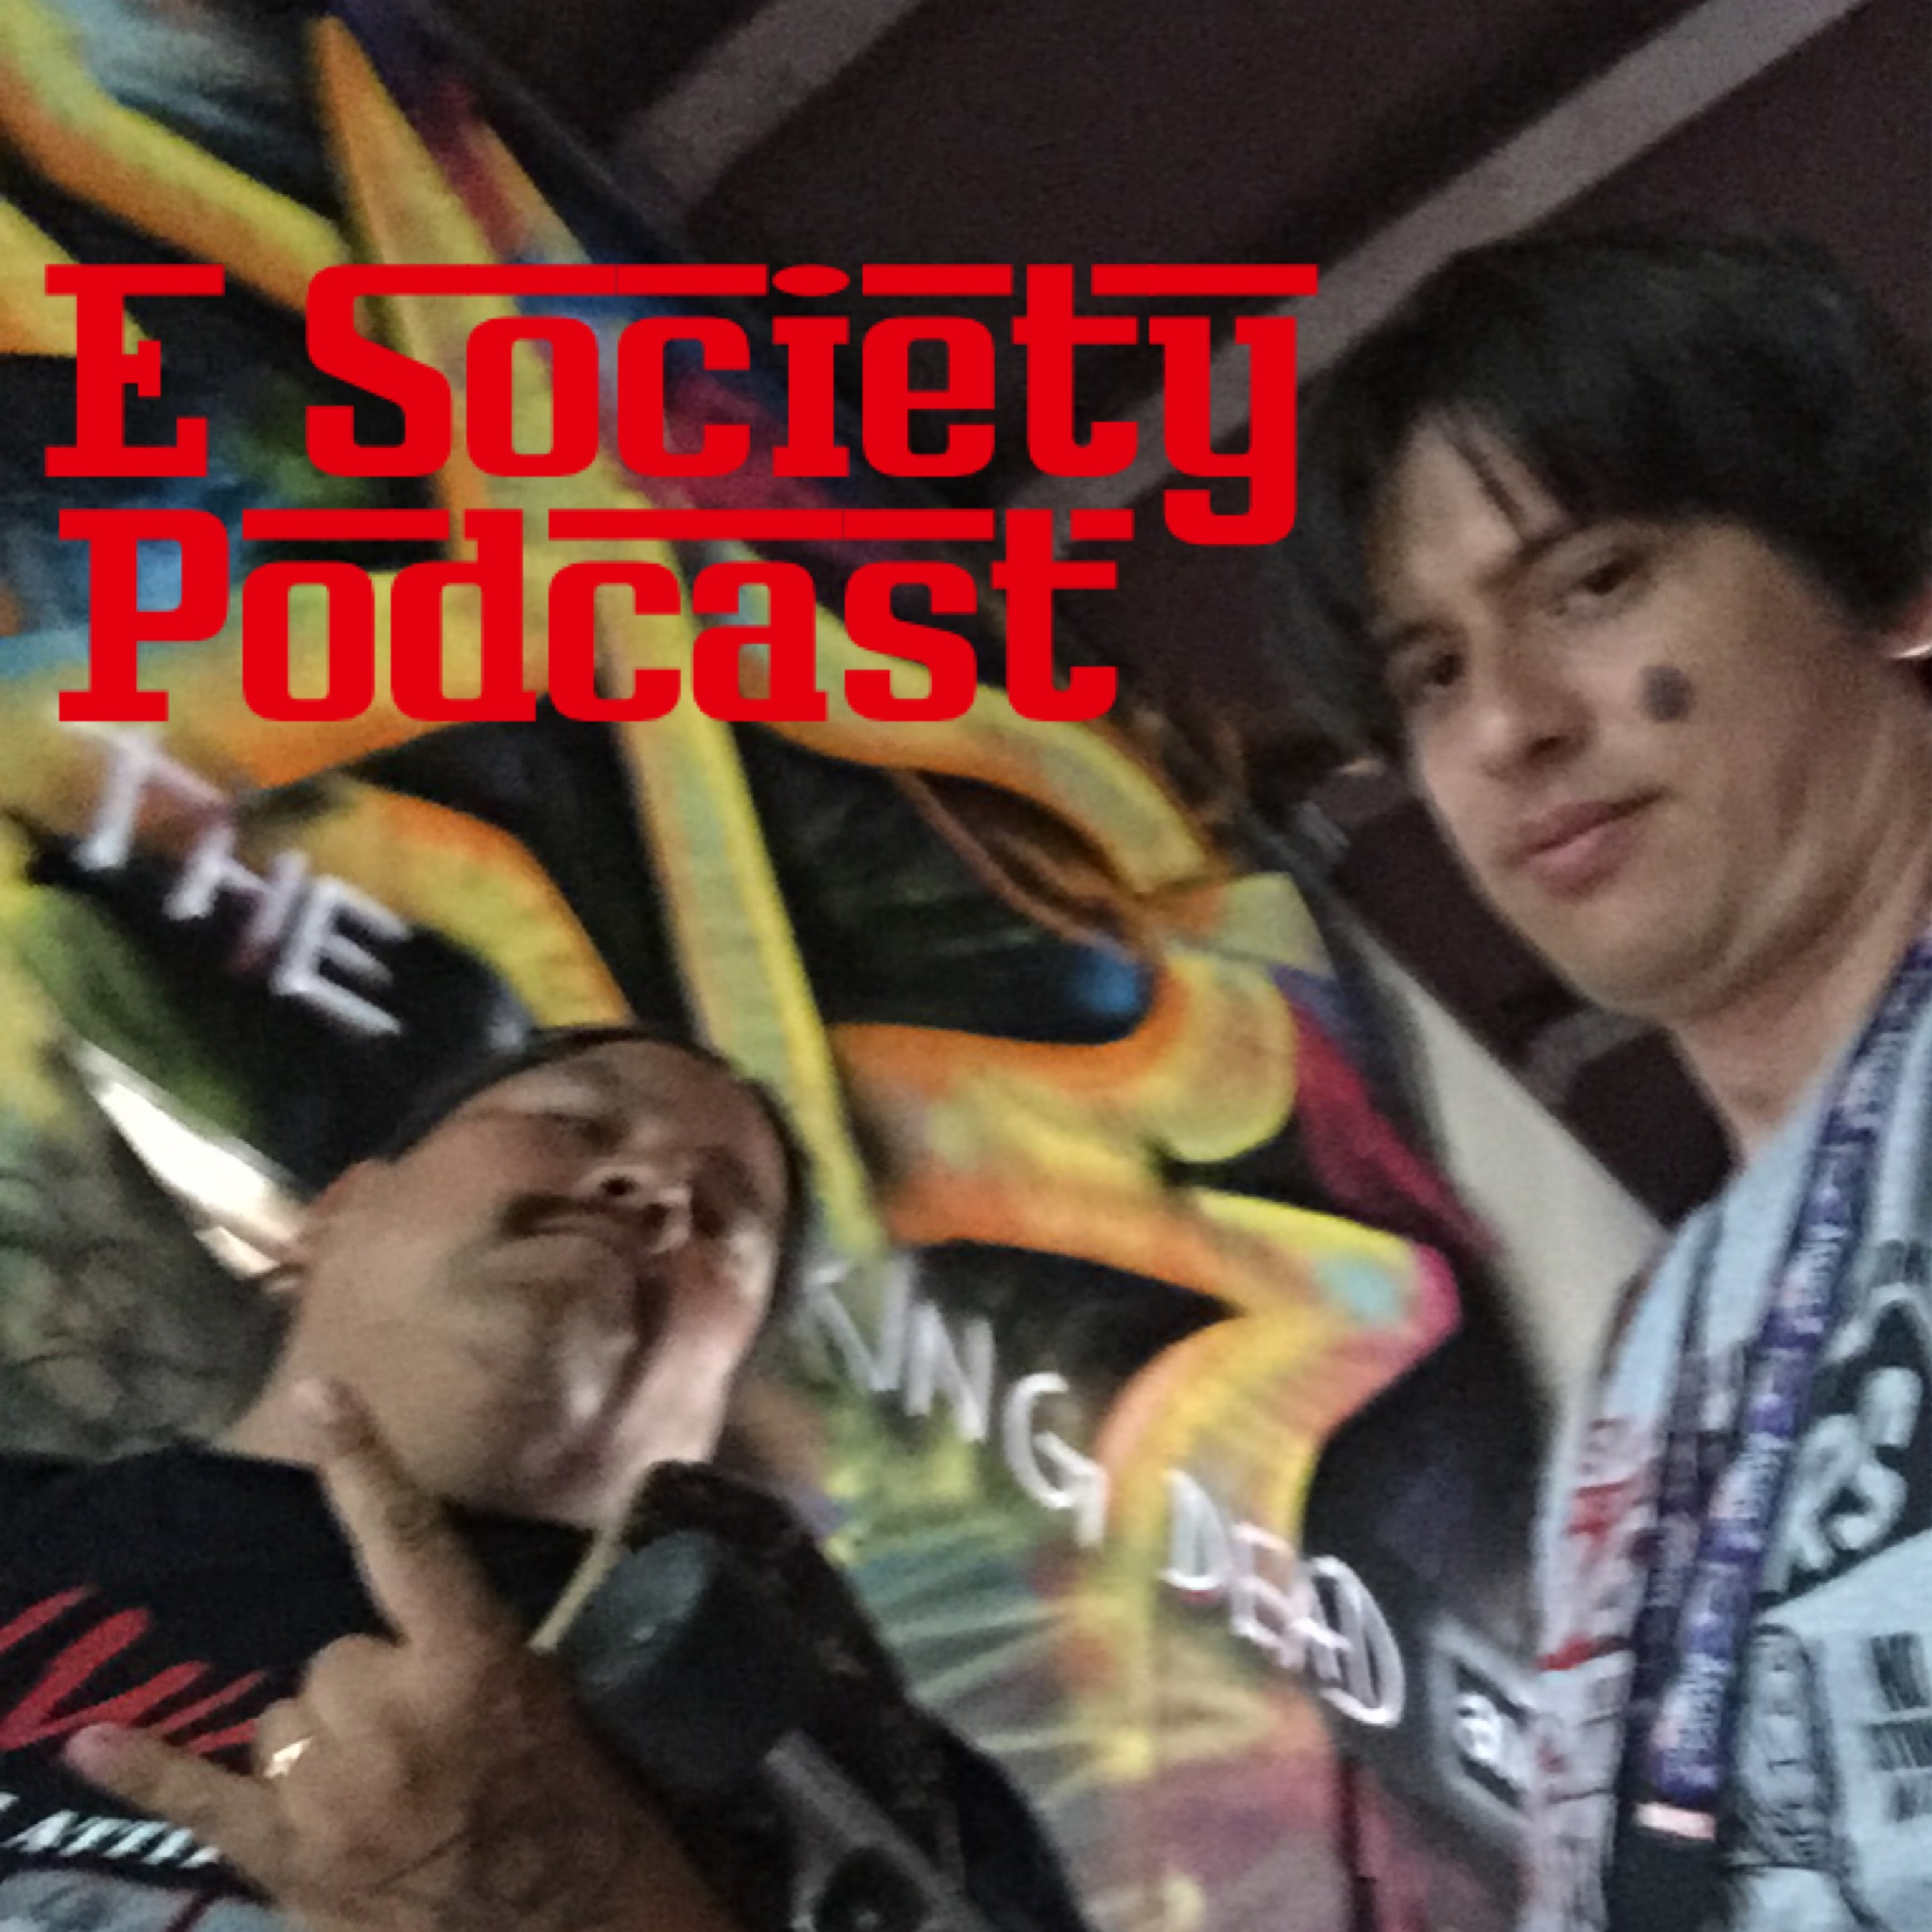 E Society Podcast - Ep. 11: Got anymore of those podcasts?